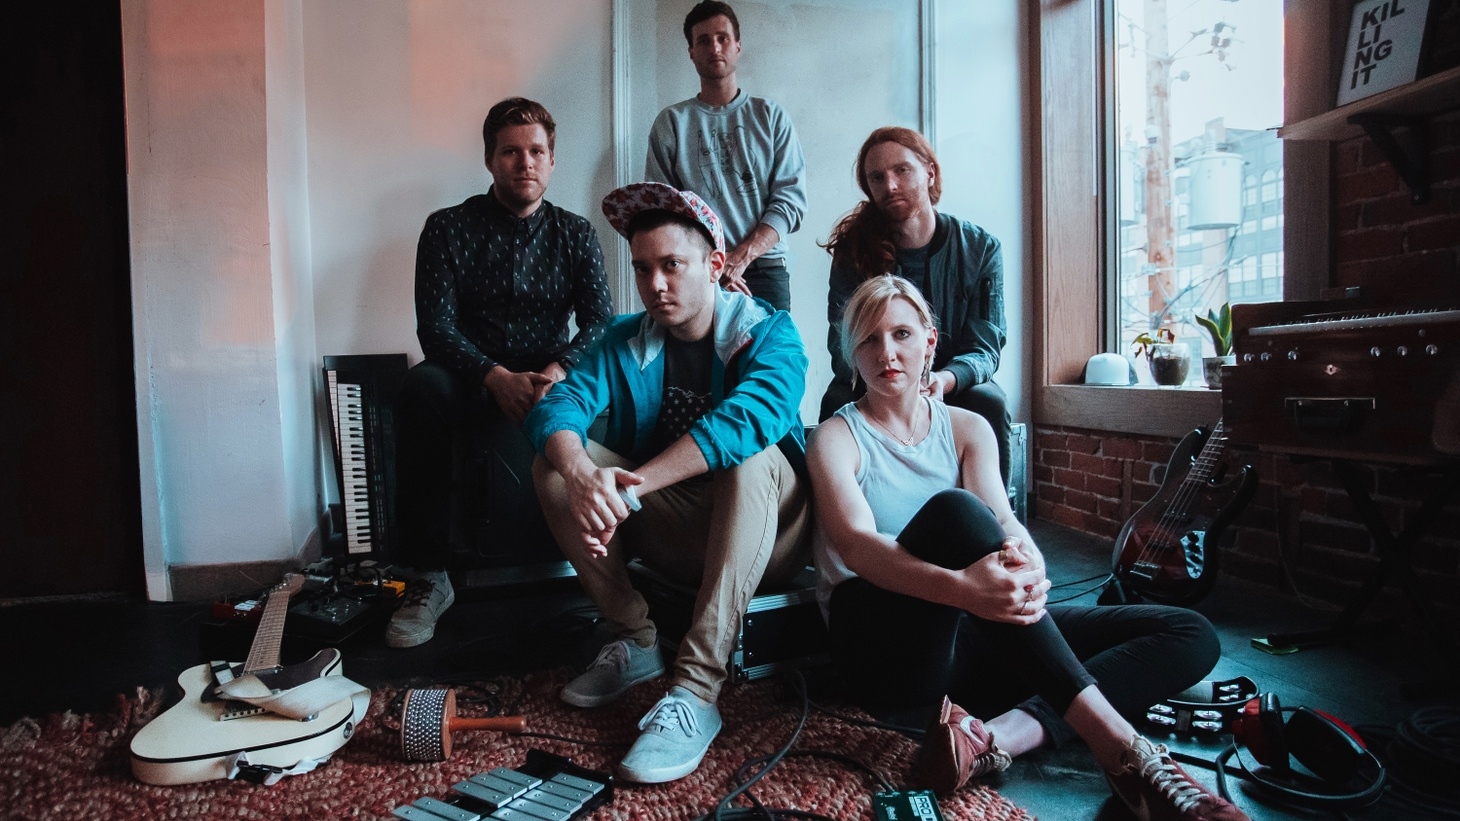 Not to be confused with a stroller, Kid Runner is a young and energetic band based in Columbus, Ohio.